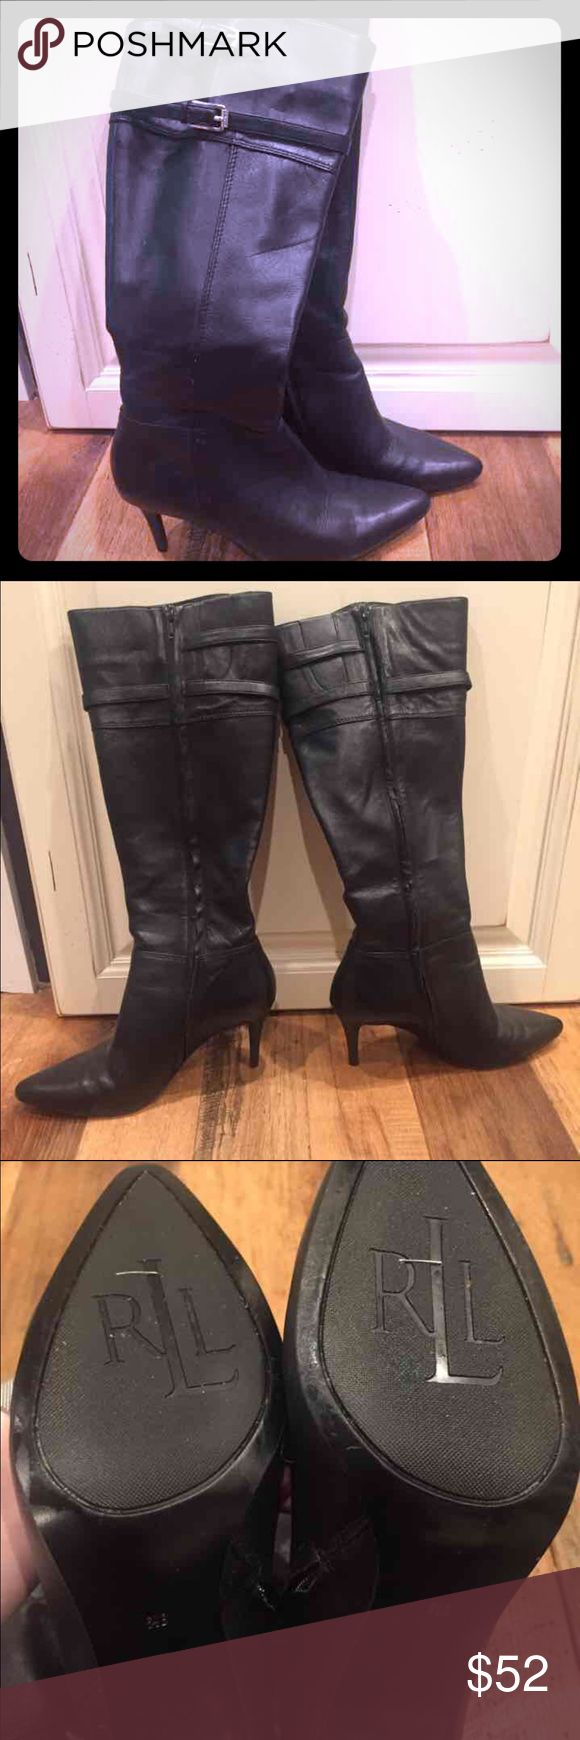 Ralph Lauren black leather knee boots